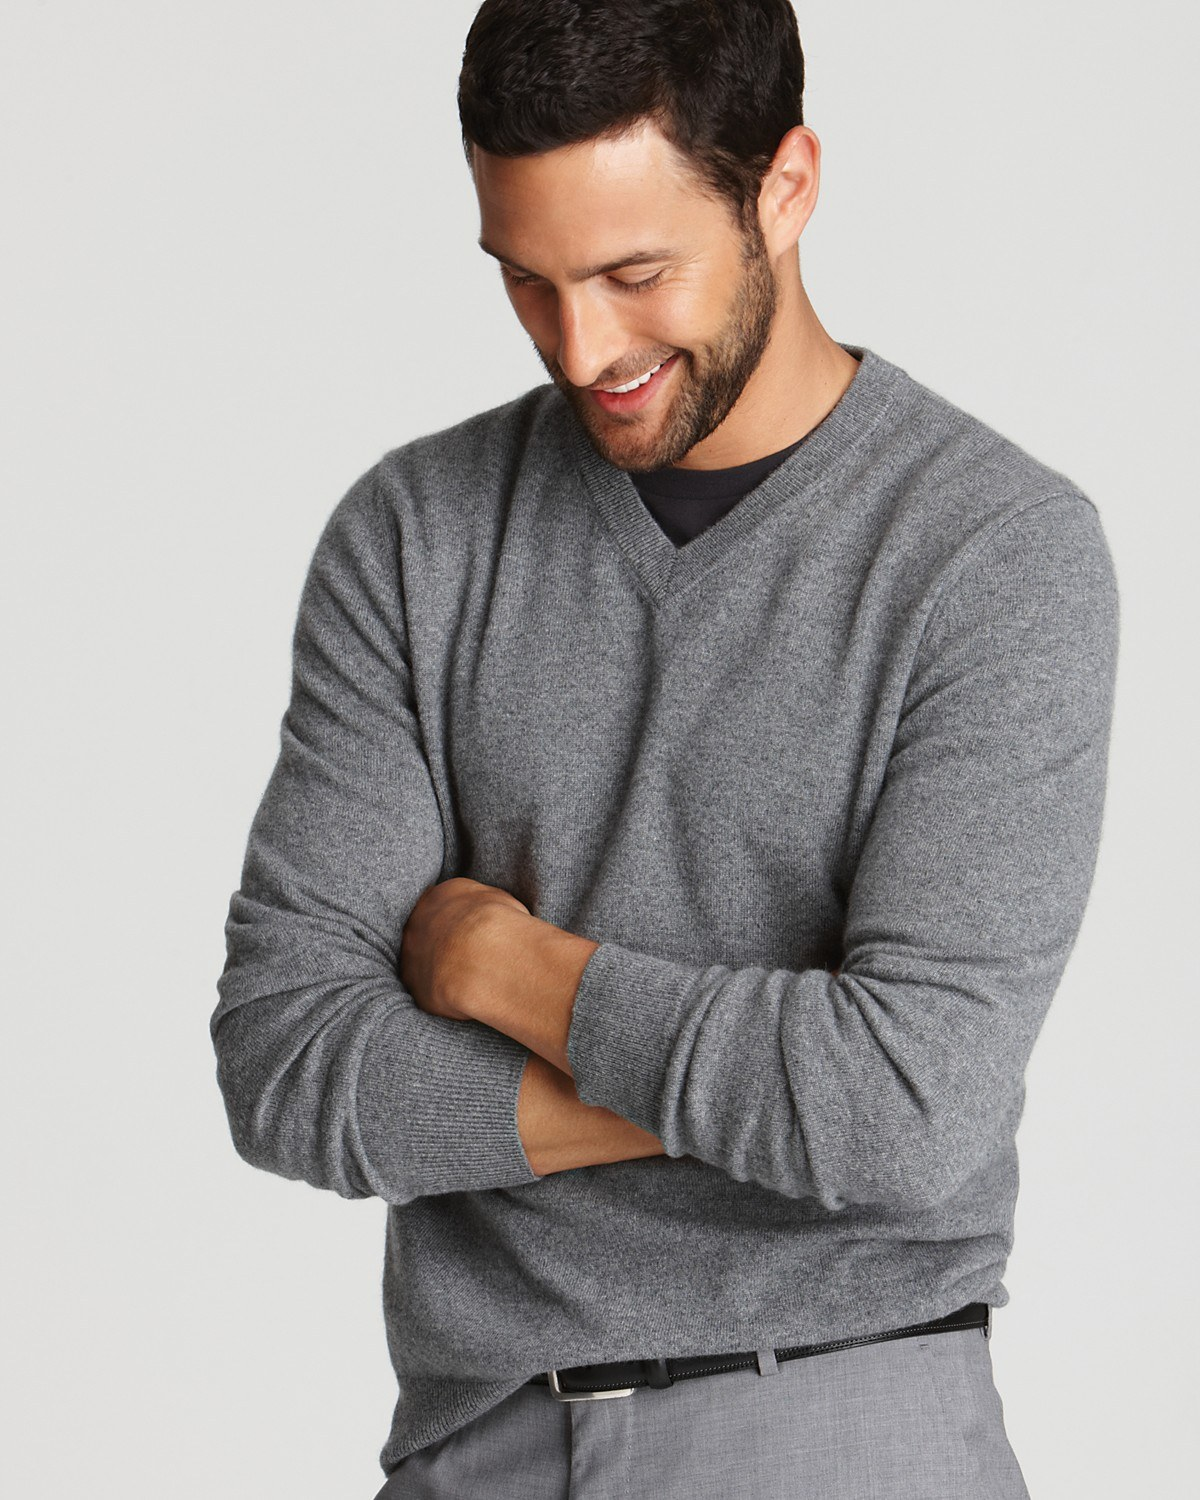 men sweater outfits